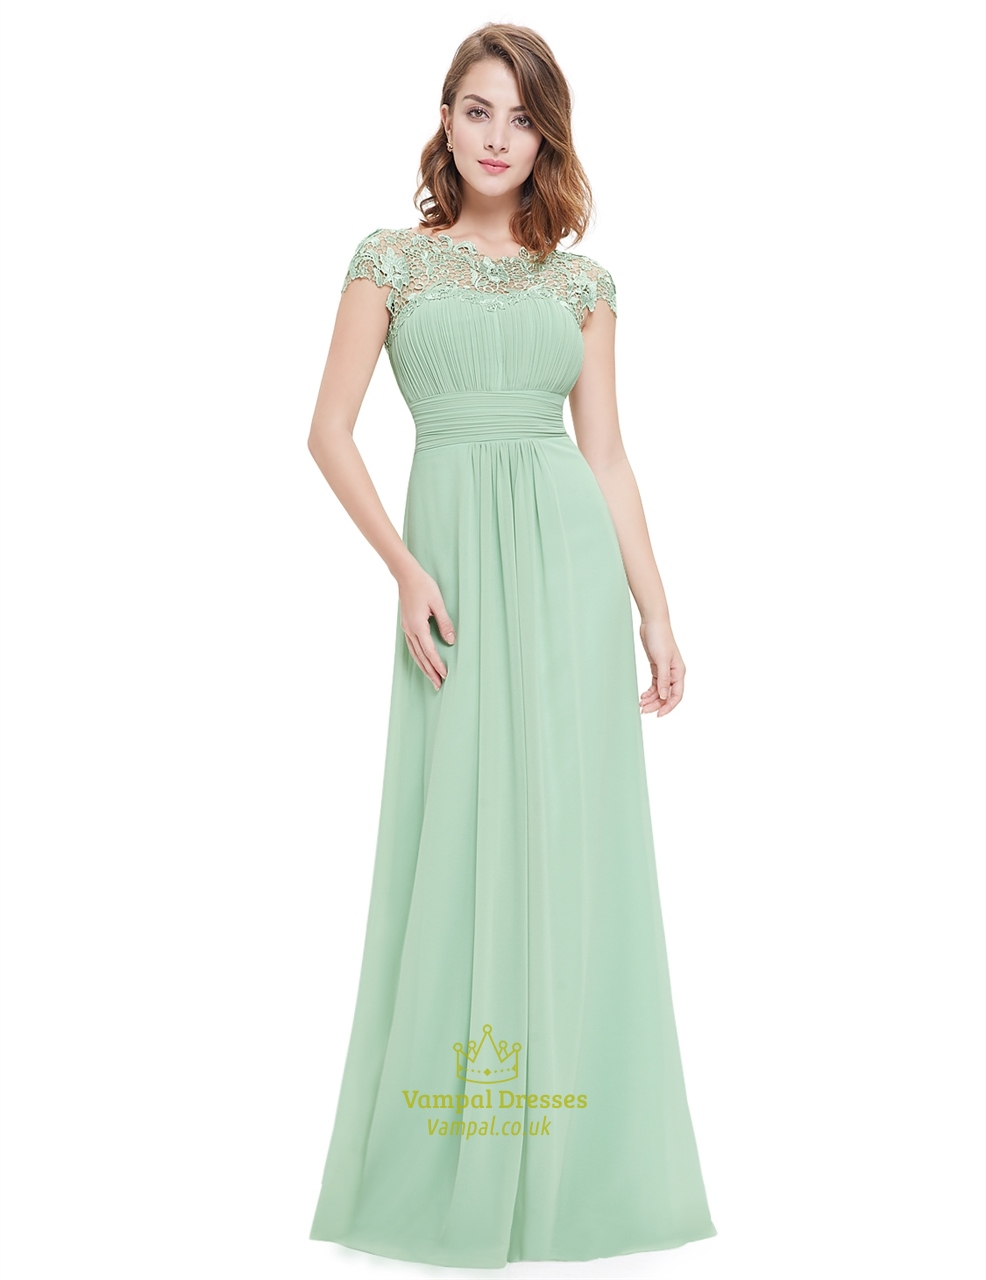 a25eb943b7d Mint Green Illusion Neckline Prom Dresses With Lace Applique SKU -NW1633